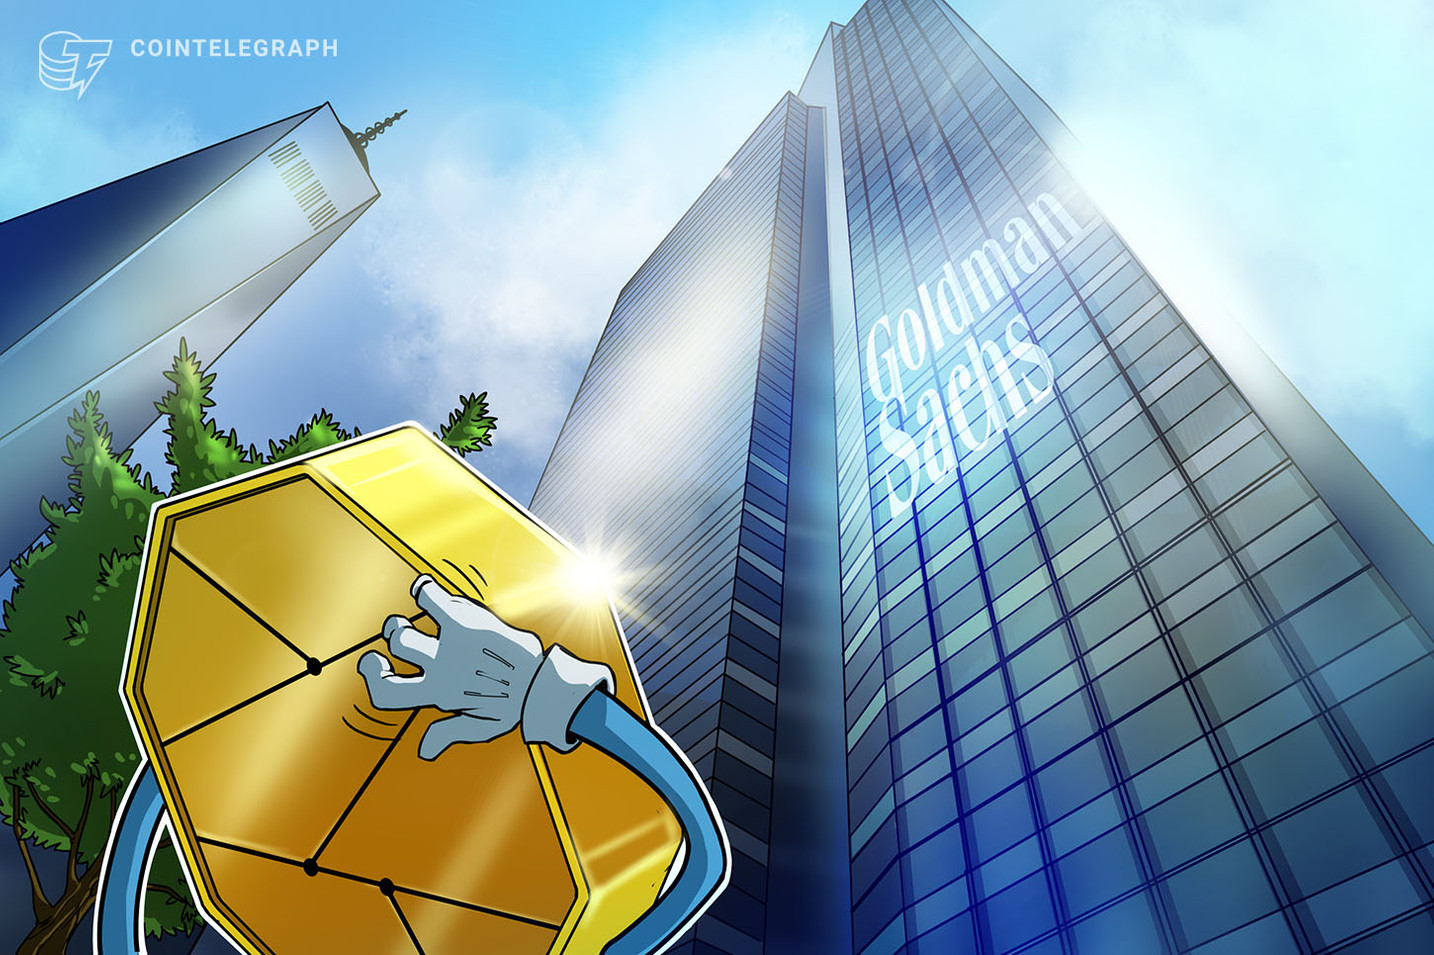 Goldman Sachs Ramps Up Development of New Secret Crypto Project